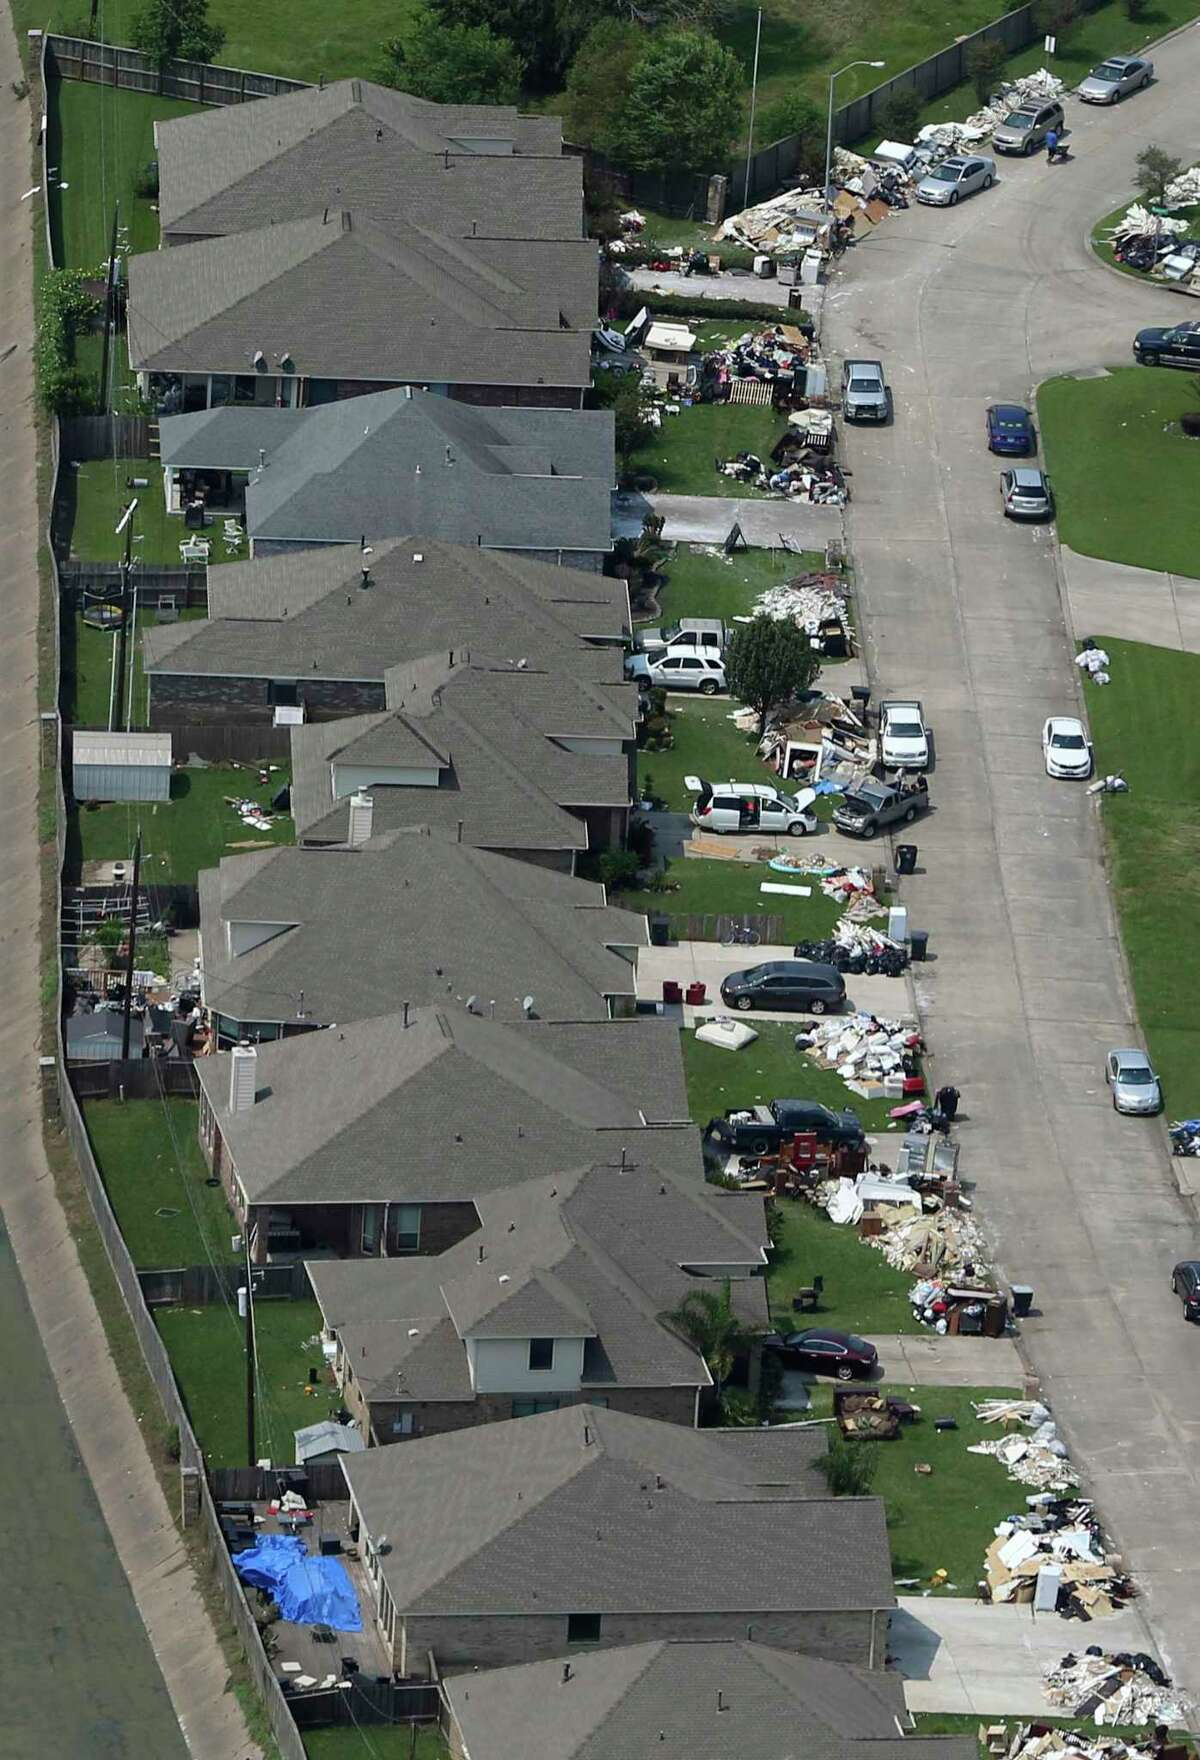 Piles of debris are seen Wednesday, Sept. 6, 2017 in front of Beaumont-area homes as residents try to salvage what they can after Hurricane Harvey flooded much of the area.